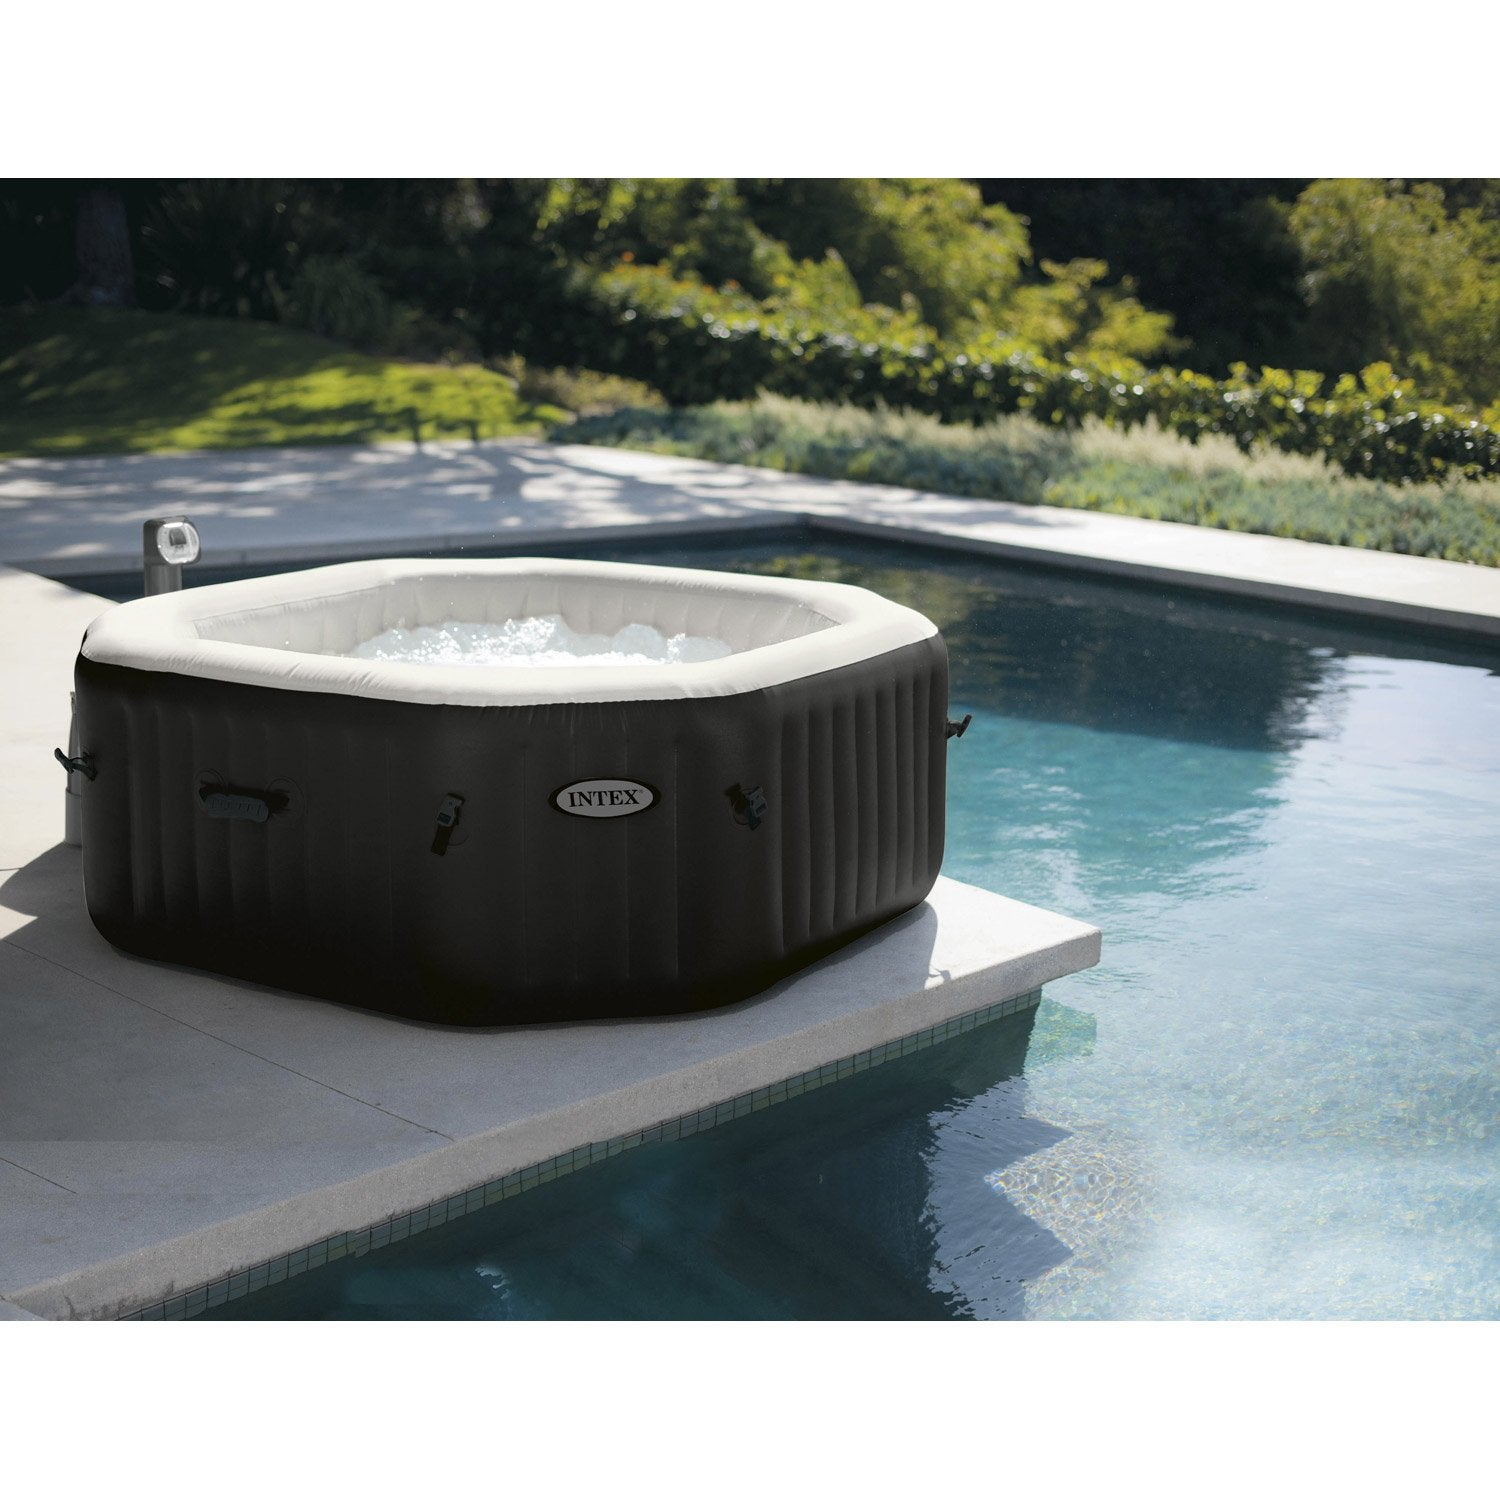 Spa gonflable intex purespa bulles octogonale 6 places - Spa gonflable intex pas cher ...